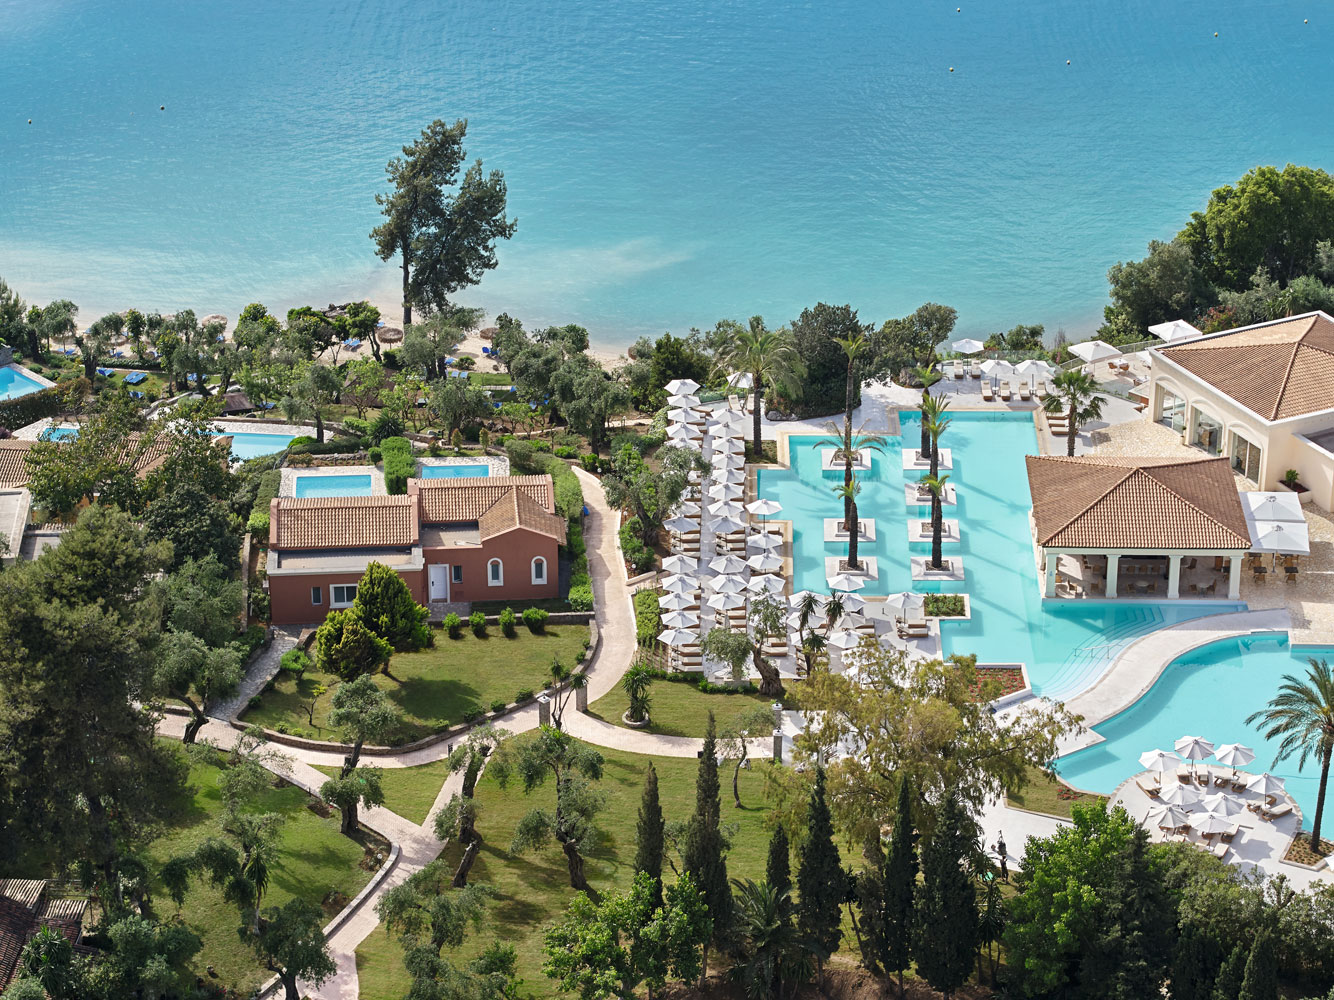 Eva Palace Luxury Hotel in Corfu